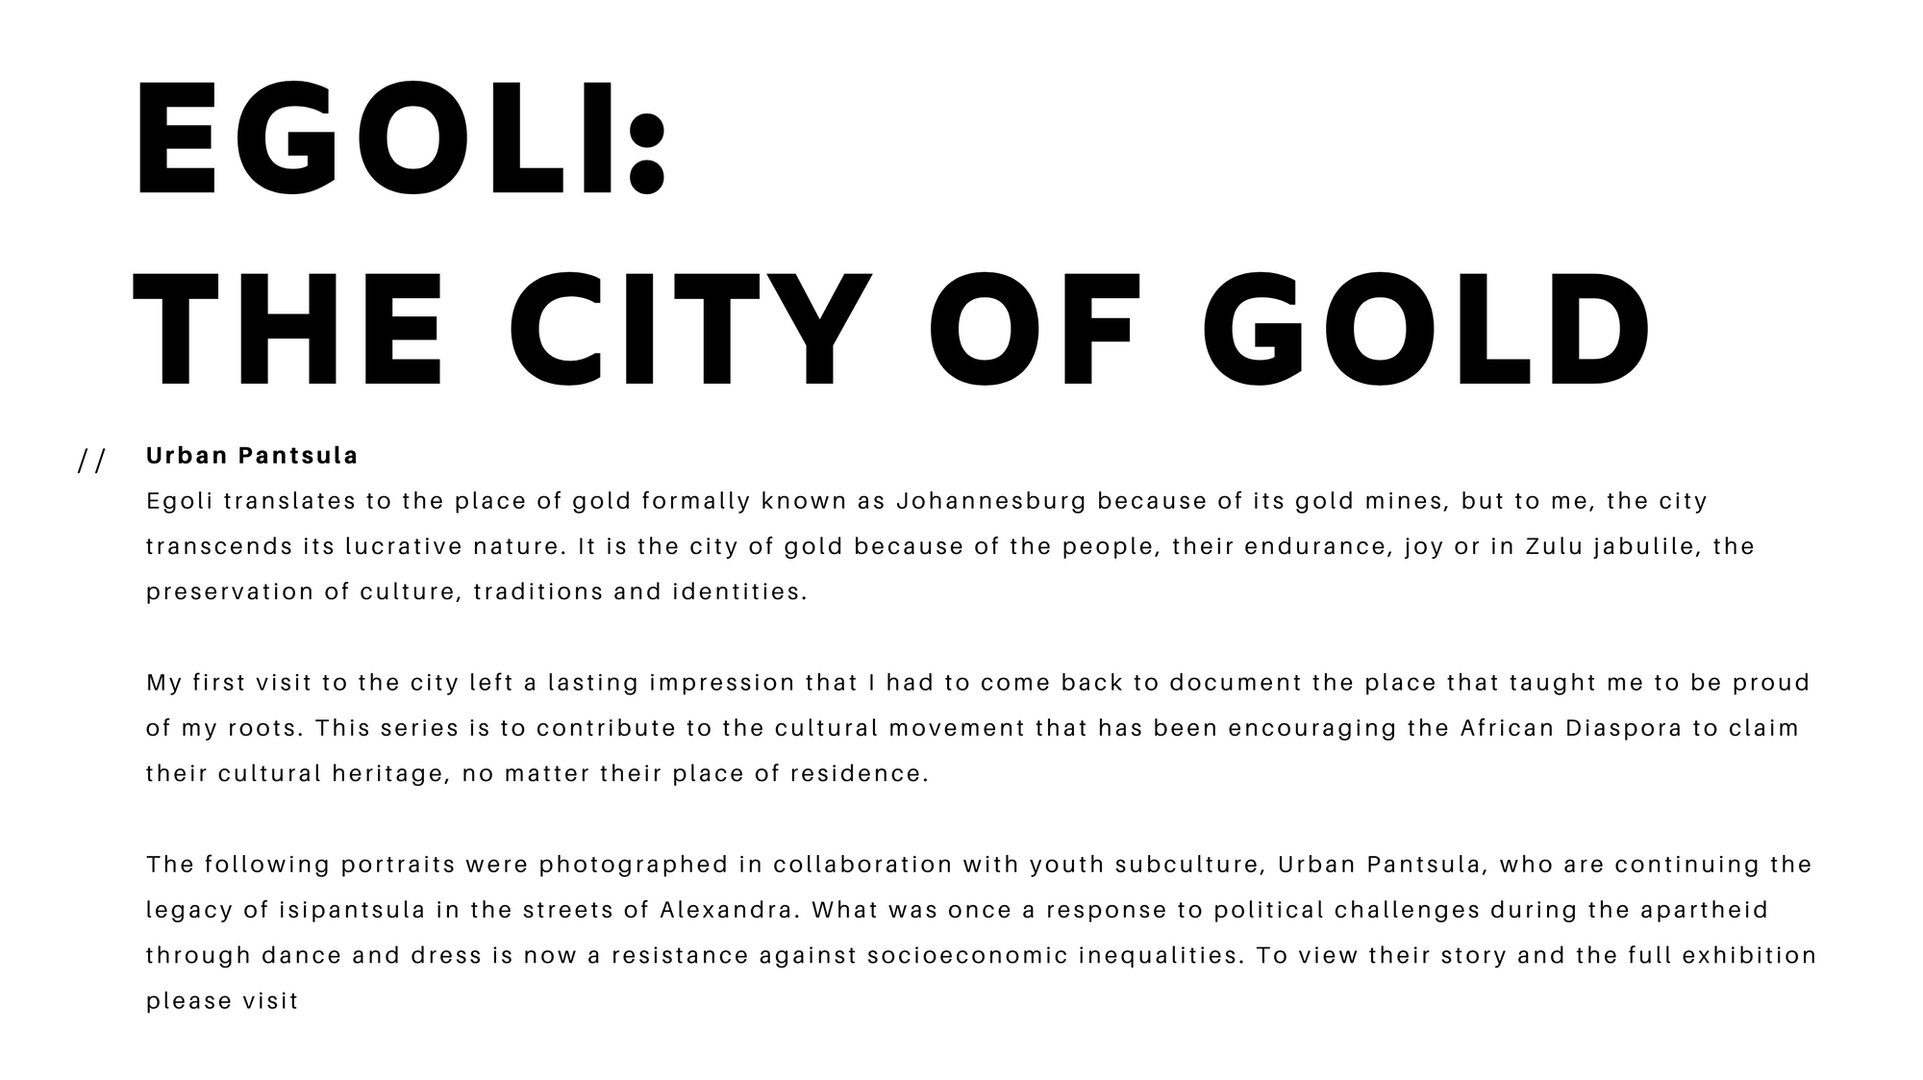 Egoli: The City of Gold